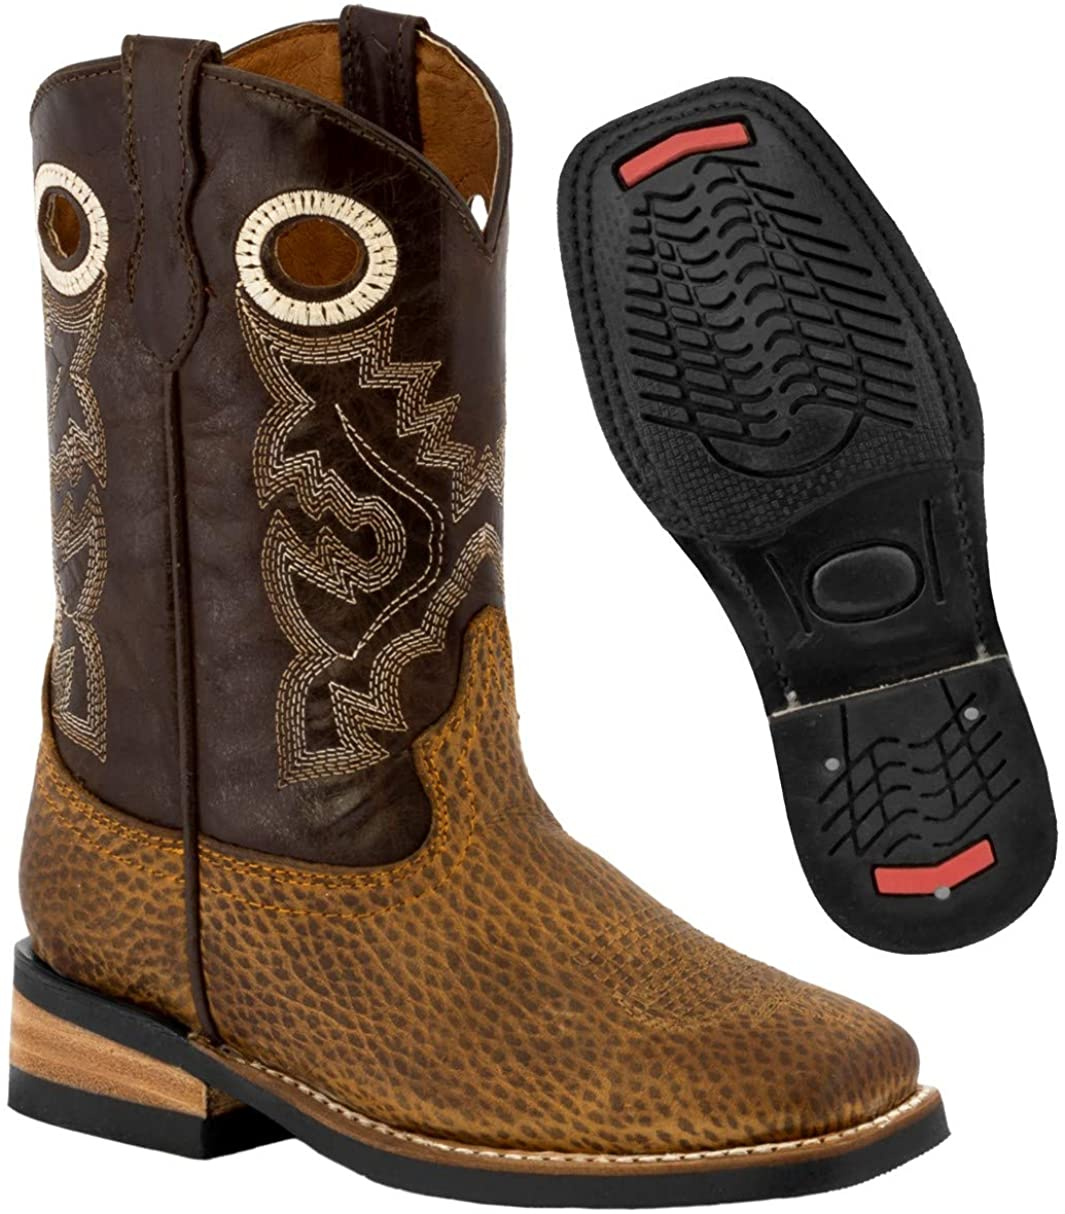 Kids Rustic Brown Western Cowboy Boots Pull On Leather Square Toe 11 Toddler